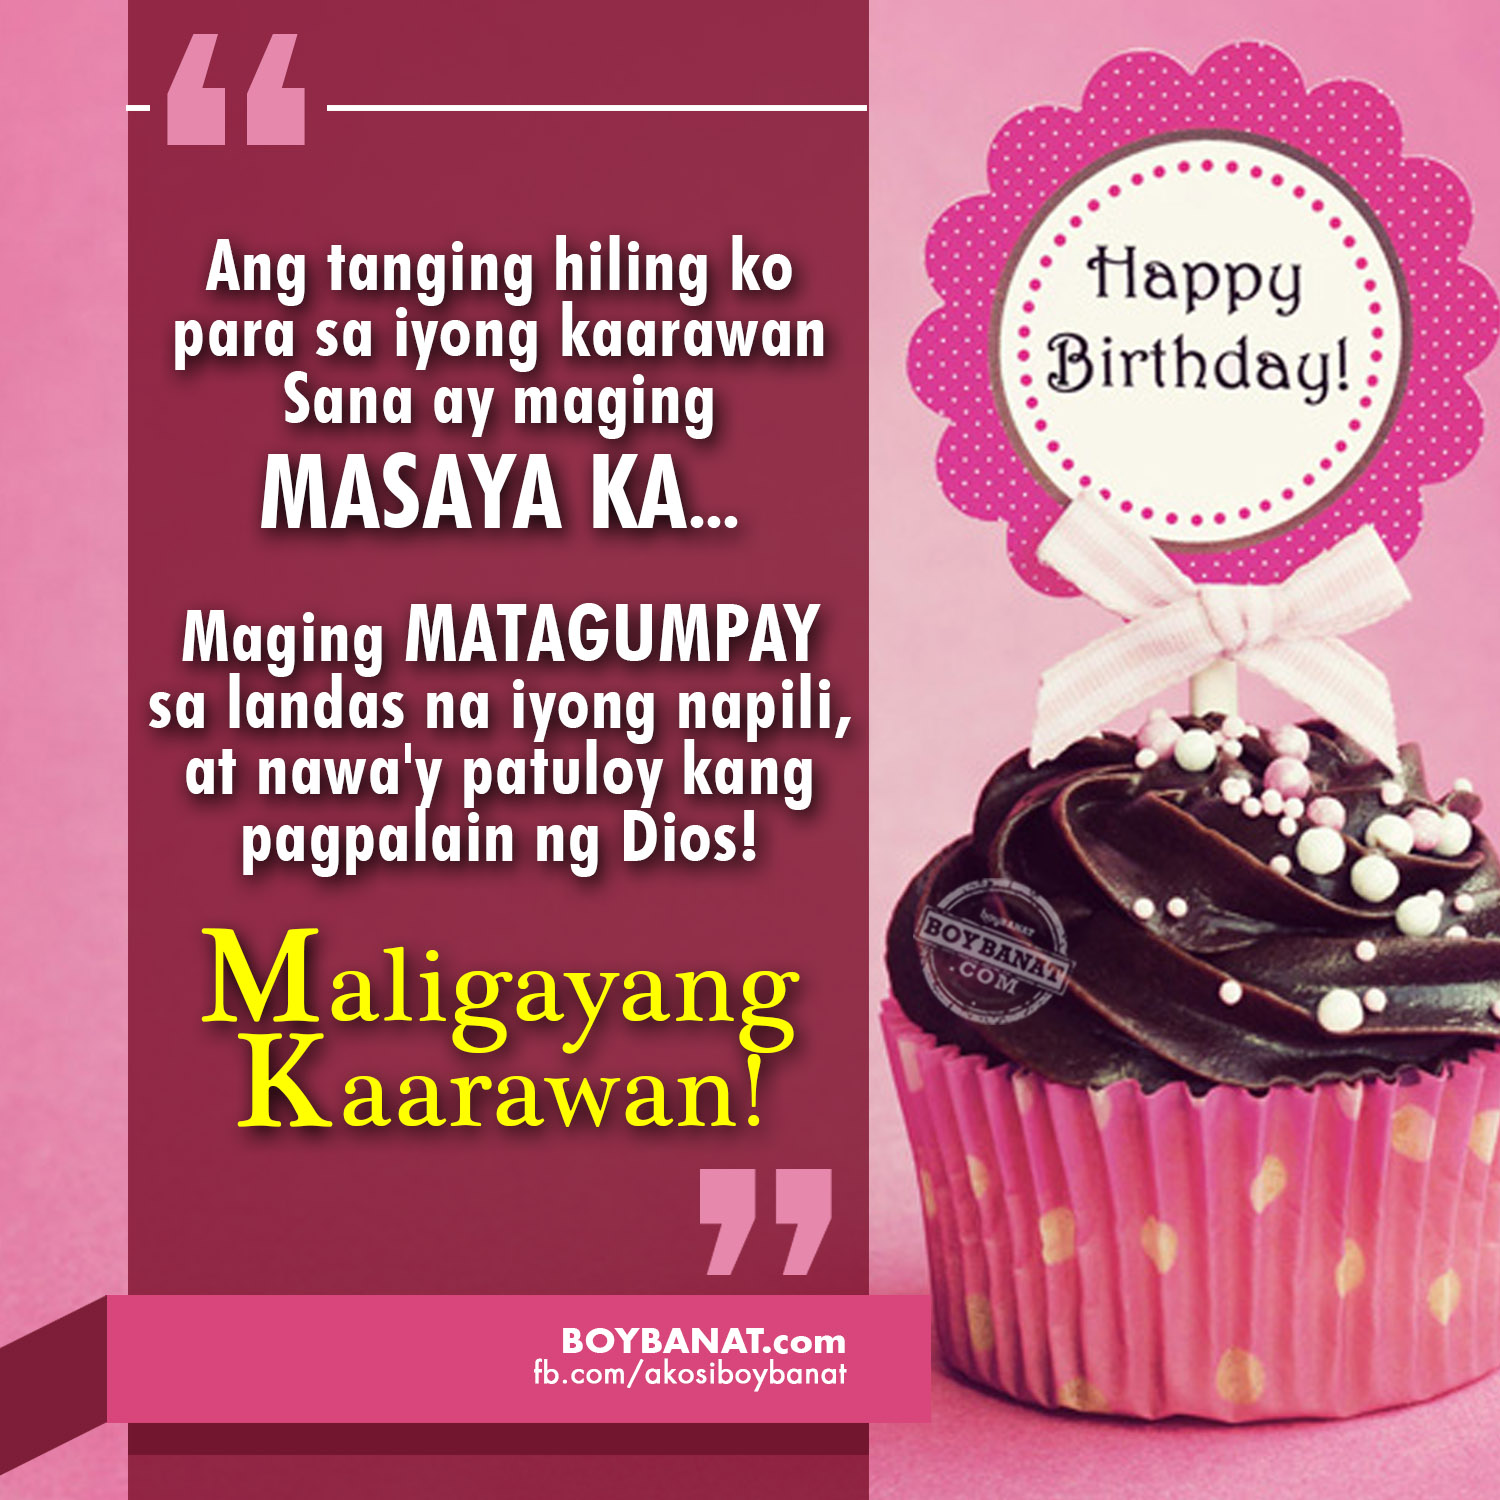 happy birthday message tagalog funny ; happy-birthday-quotes-and-heartfelt-messages-on-funny-bday-quotes-plus-fun-birthday-also-cool